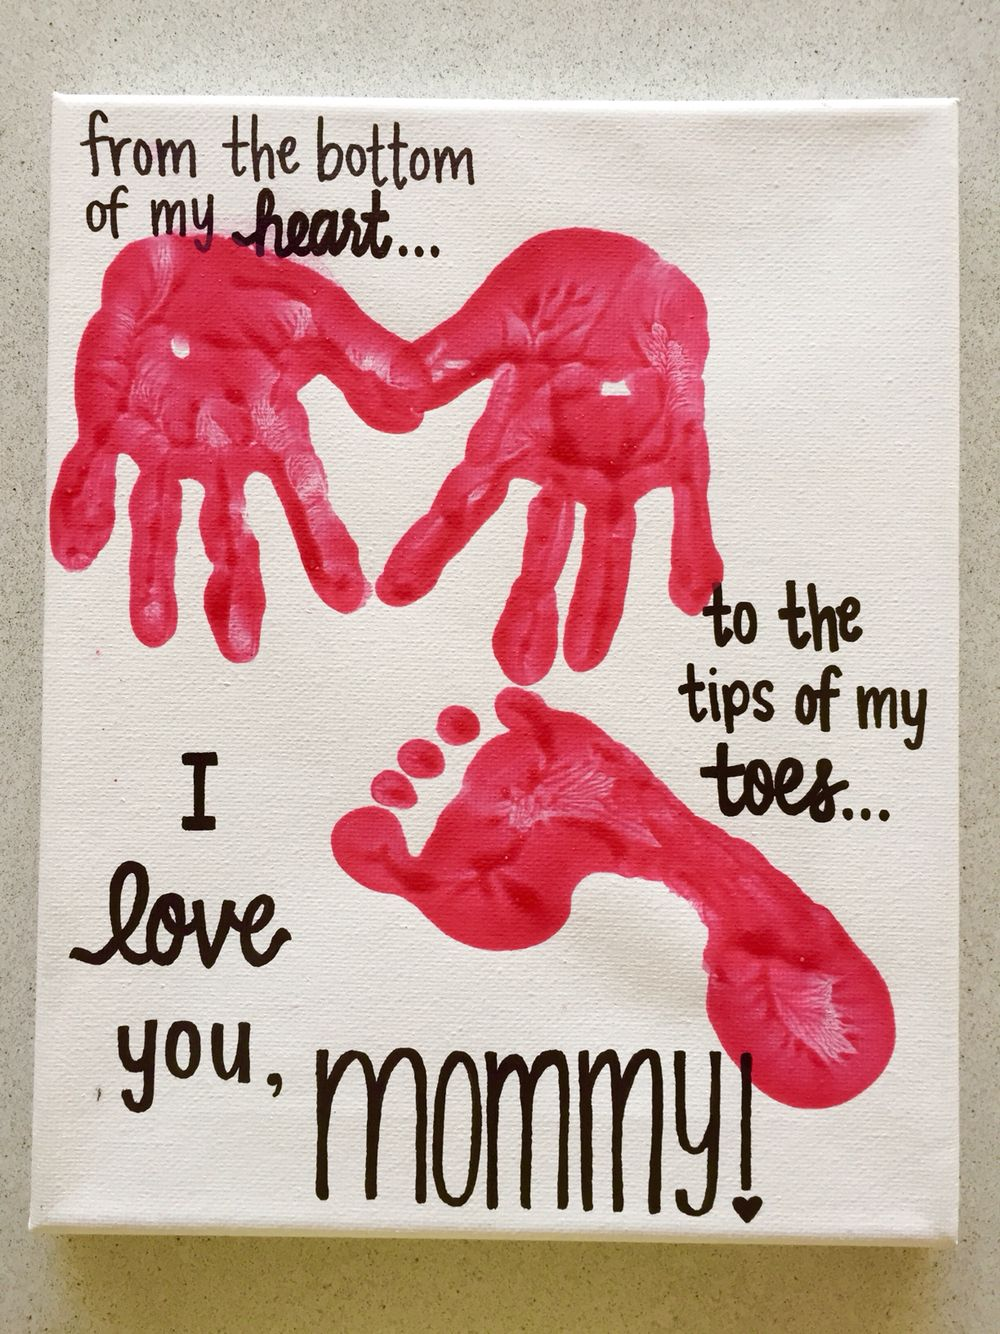 Cute Mother S Day Gift From Kiddos With Small Hands And Feet I Used A Permanent M Cute Mothers Day Gifts Valentine Crafts For Kids Mothers Day Crafts For Kids